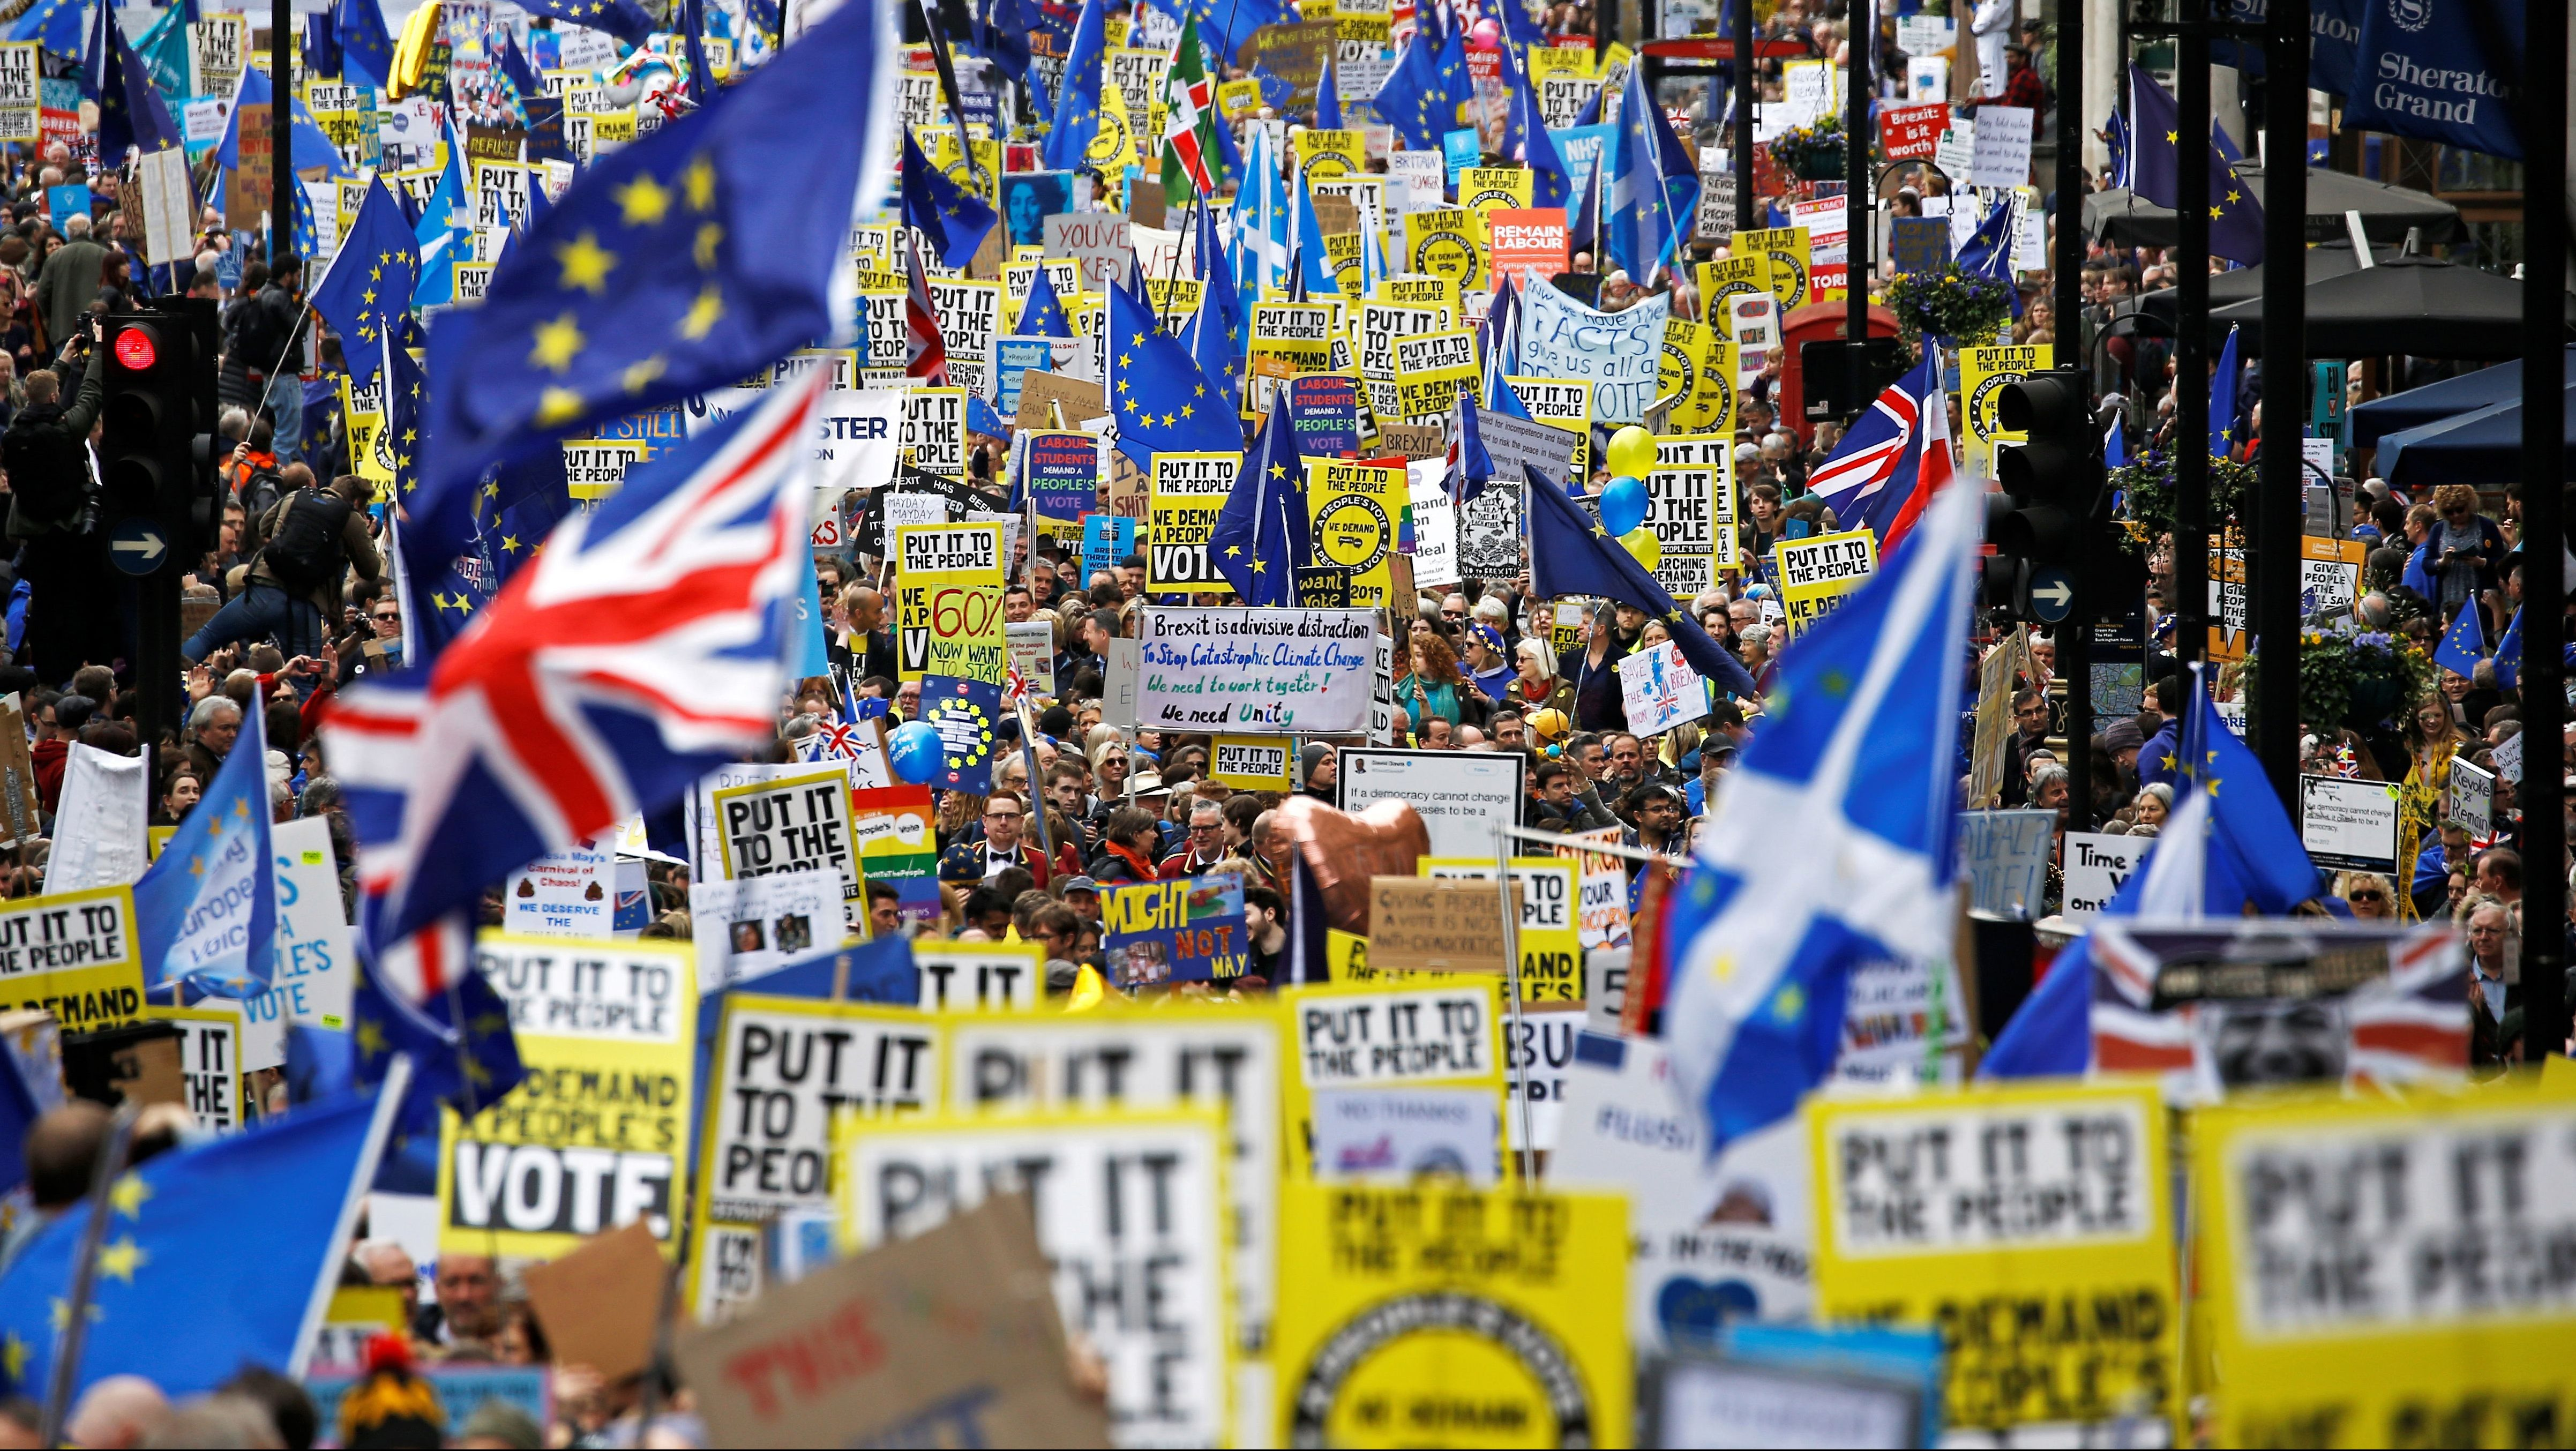 EU supporters, calling on the government to give Britons a vote on the final Brexit deal, participate in the 'People's Vote' march in central London, Britain March 23, 2019.